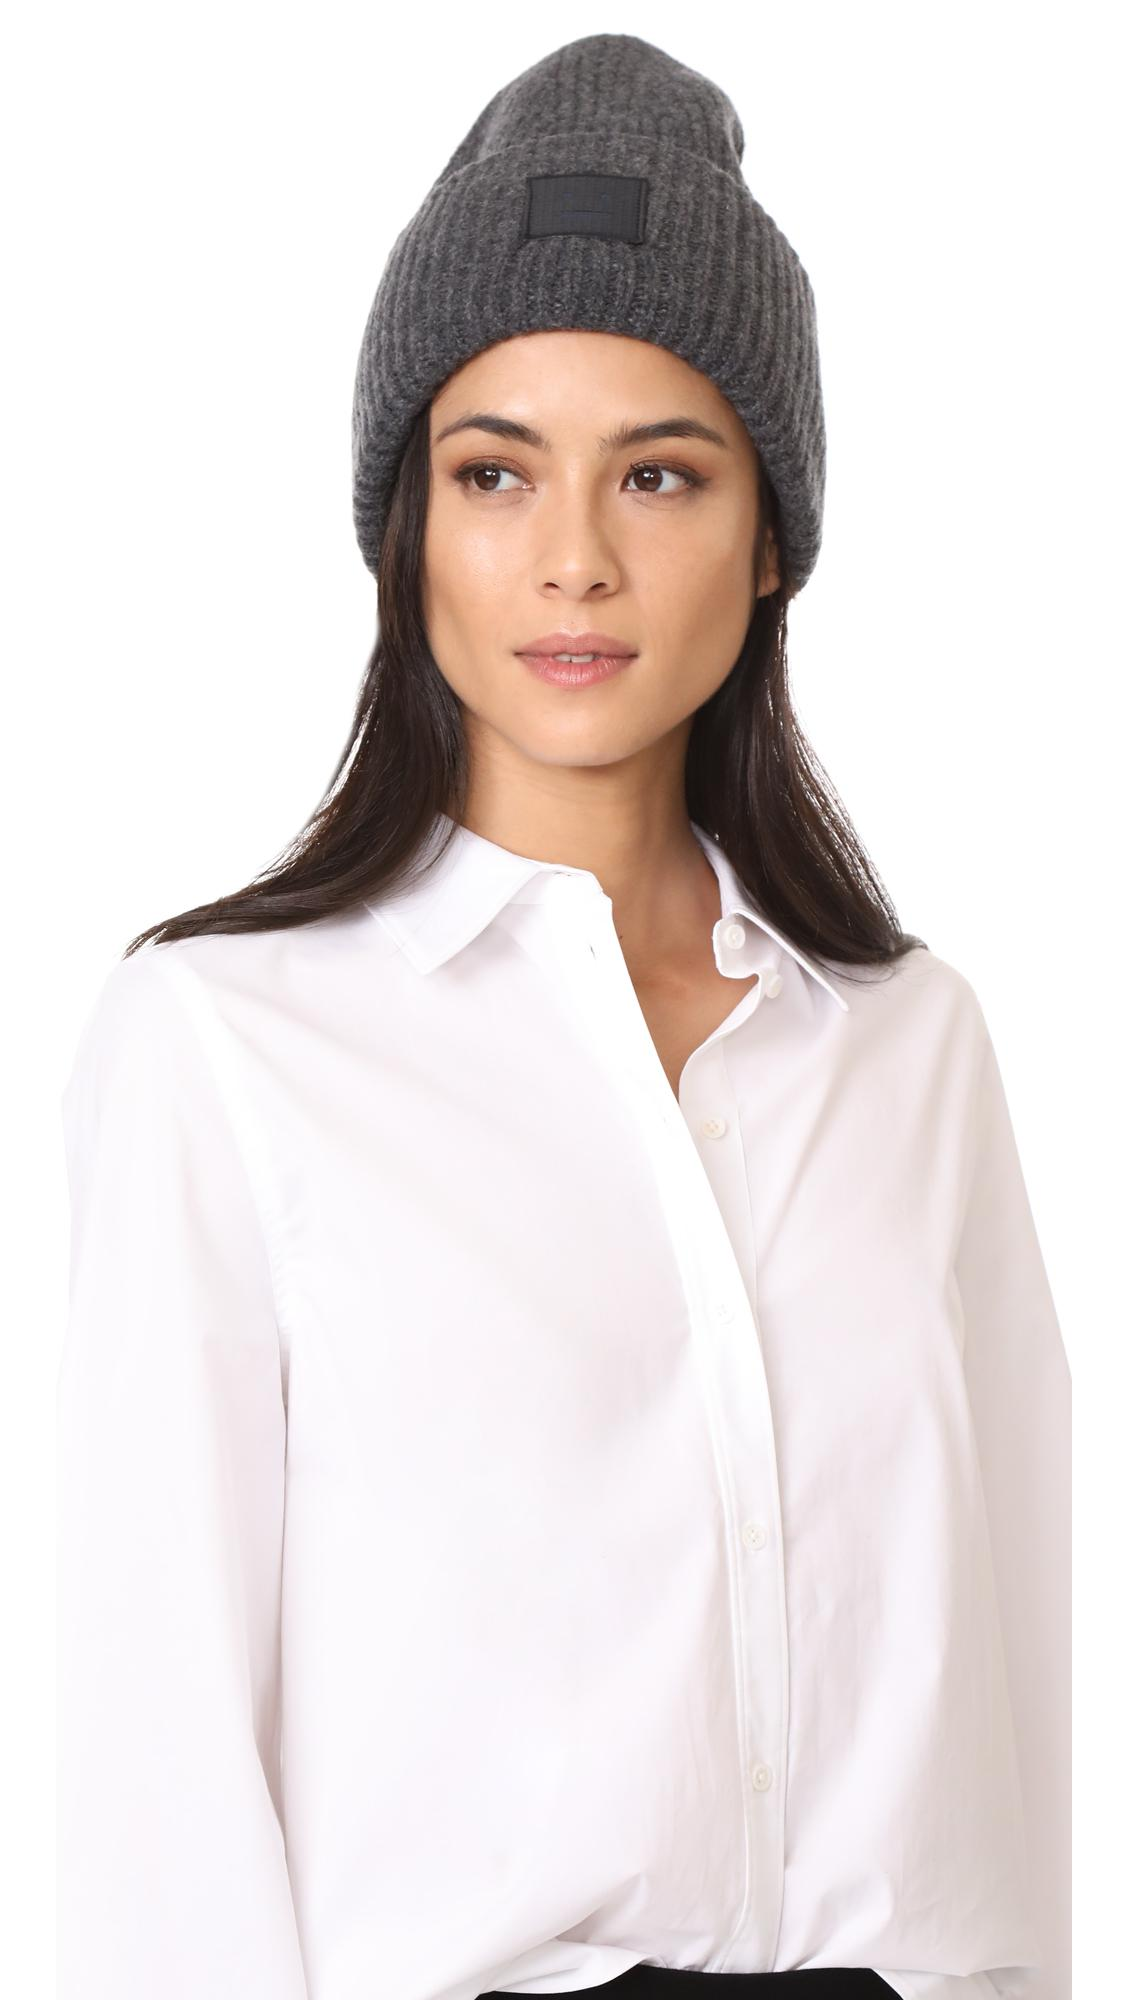 23a8b687bf6 Acne Studios Pansy L Face Hat in Gray - Lyst